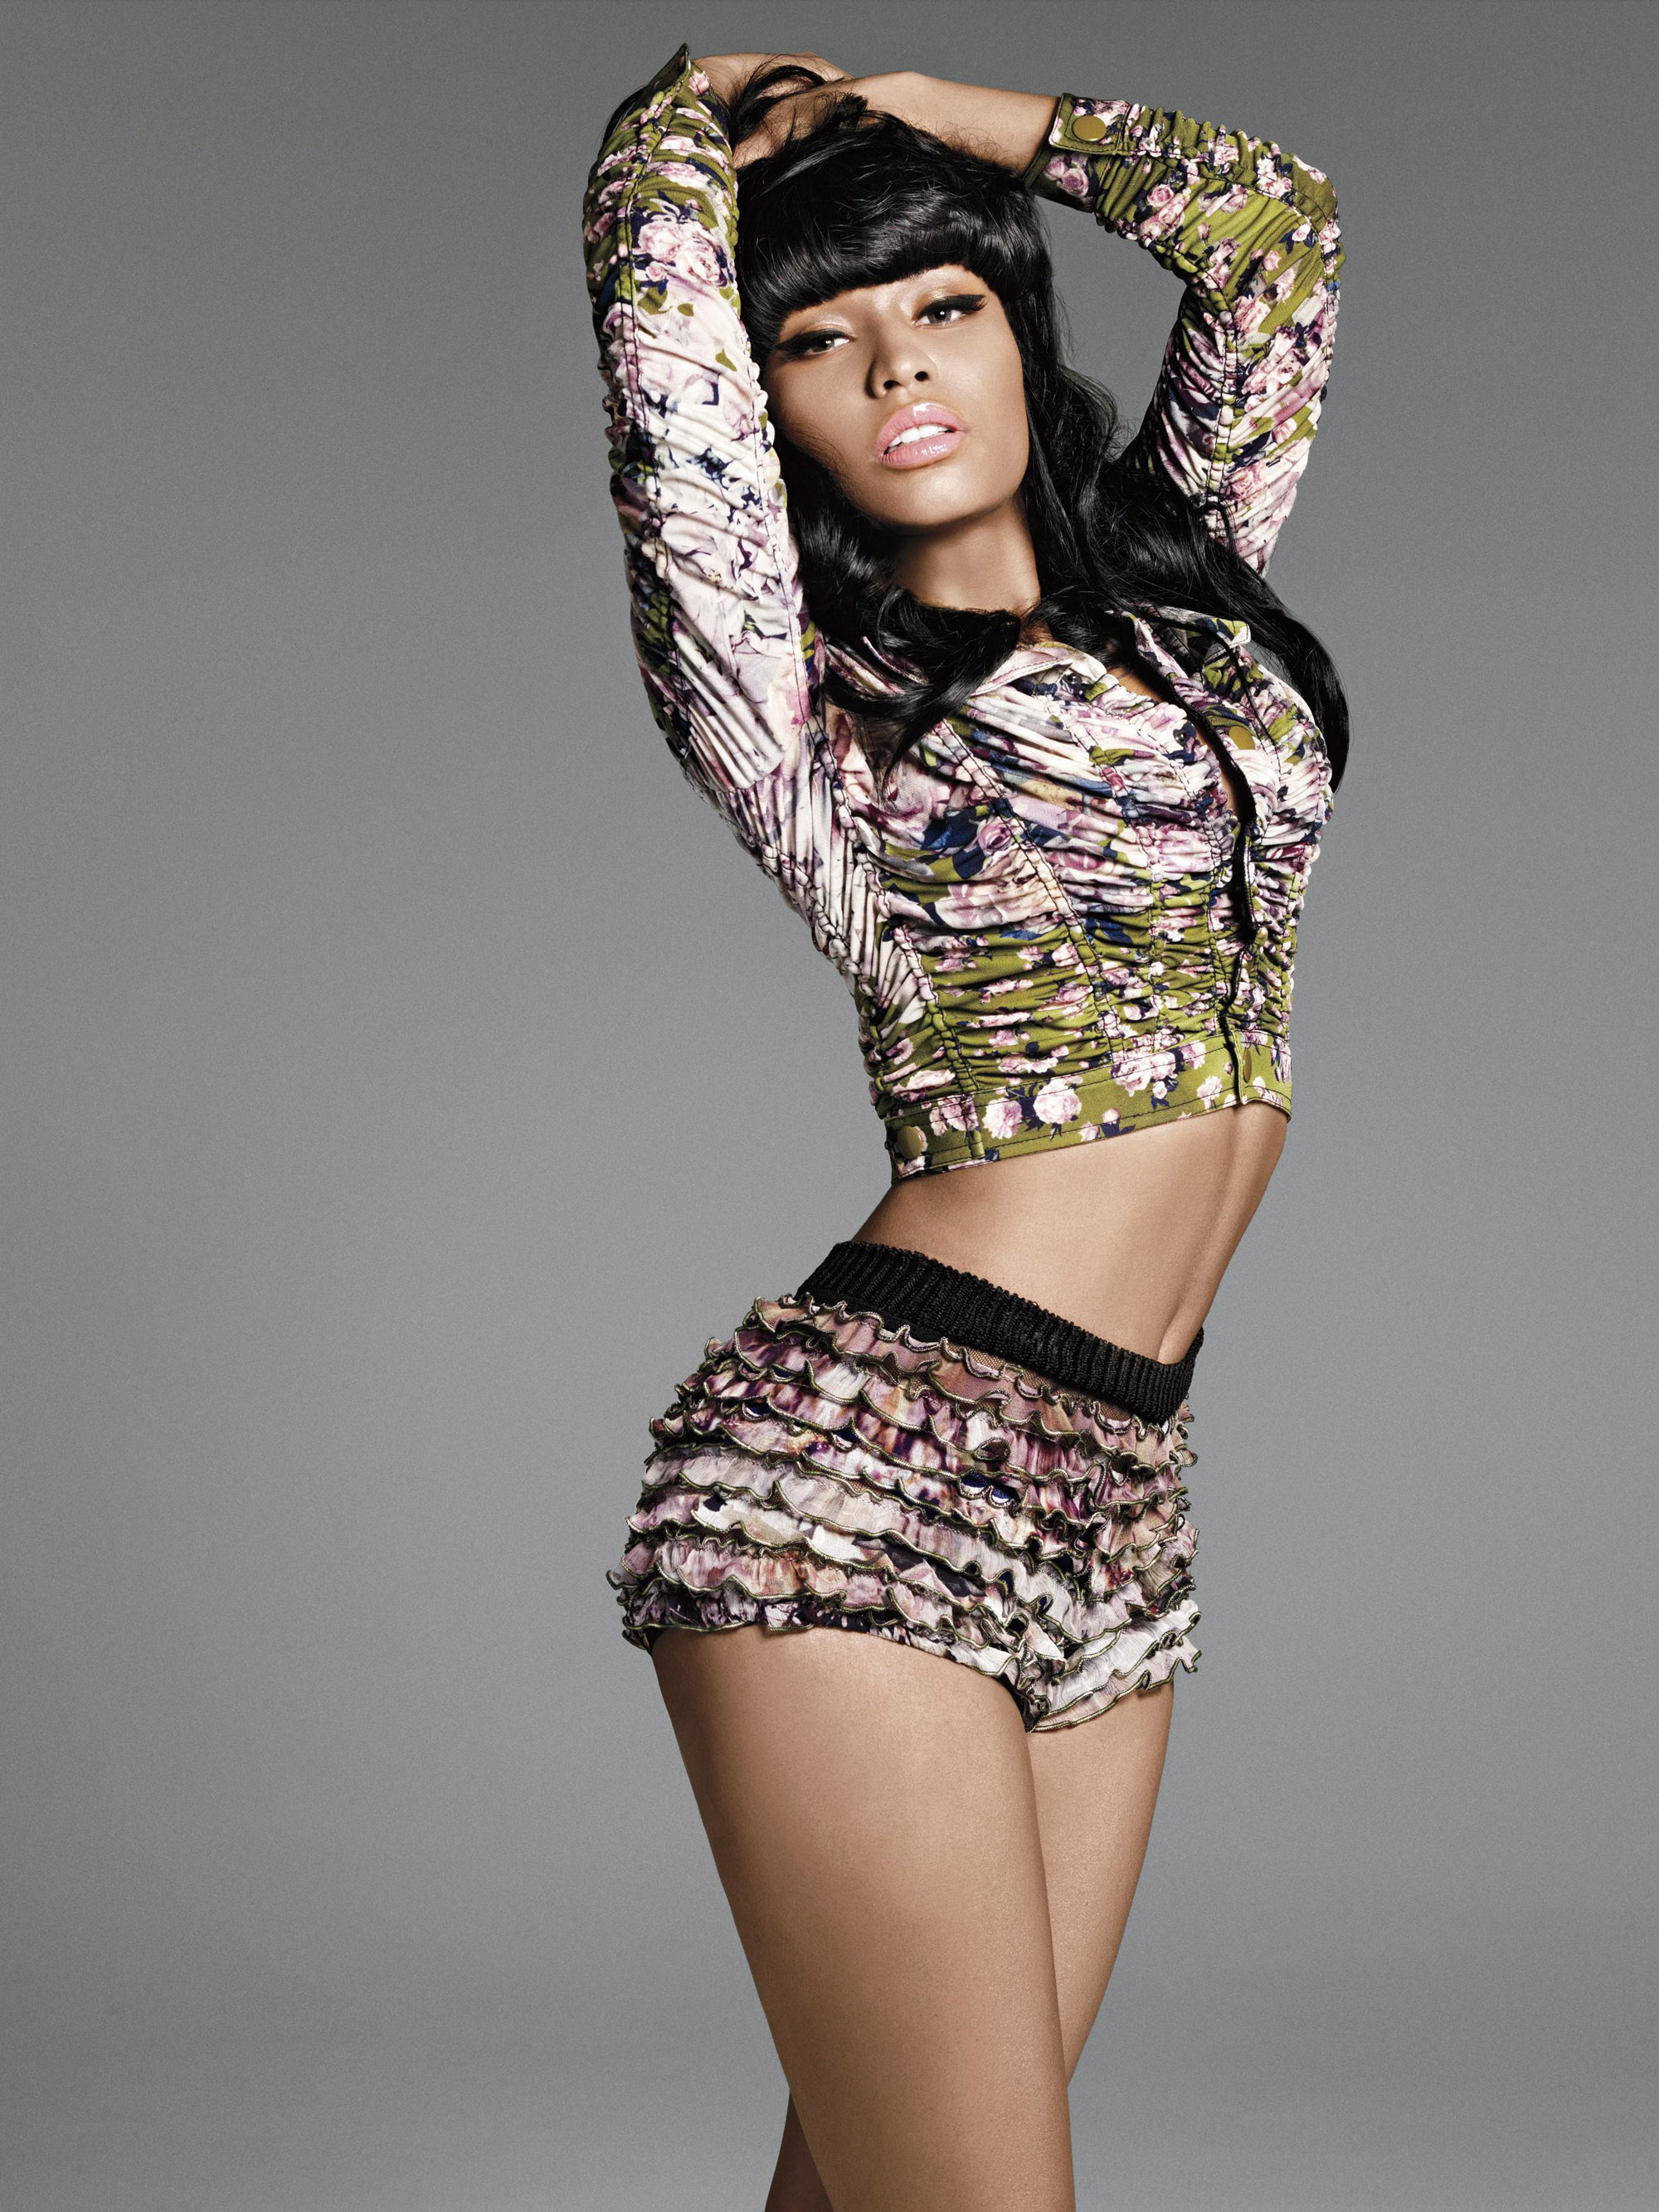 Image - Elle5.png | Nicki Minaj Wiki | FANDOM powered by Wikia